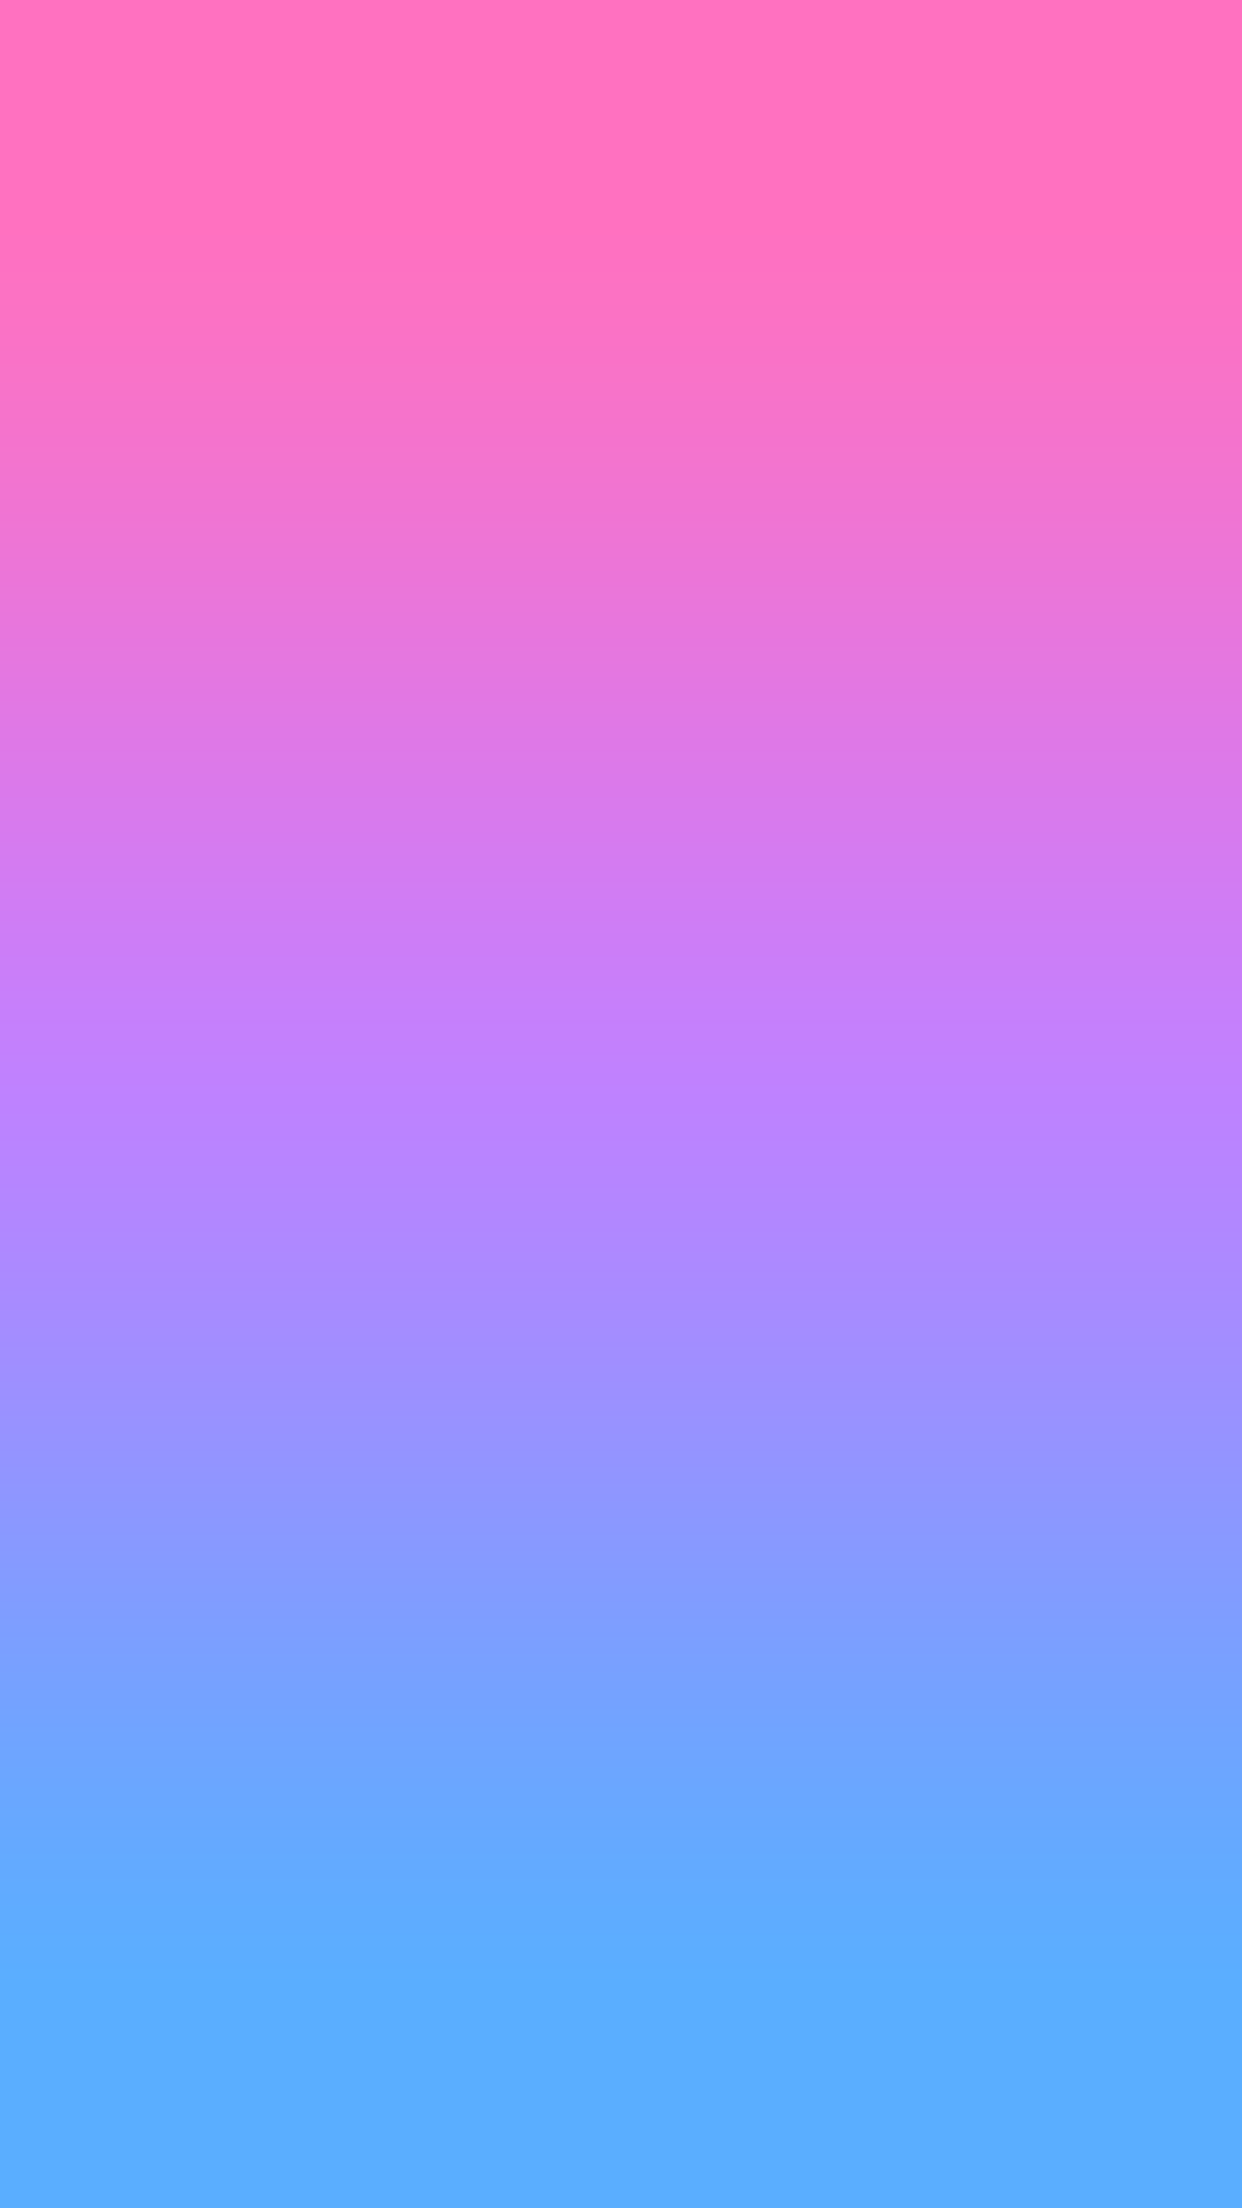 Pink Purple Blue Violet Gradient Ombre Wallpaper Background